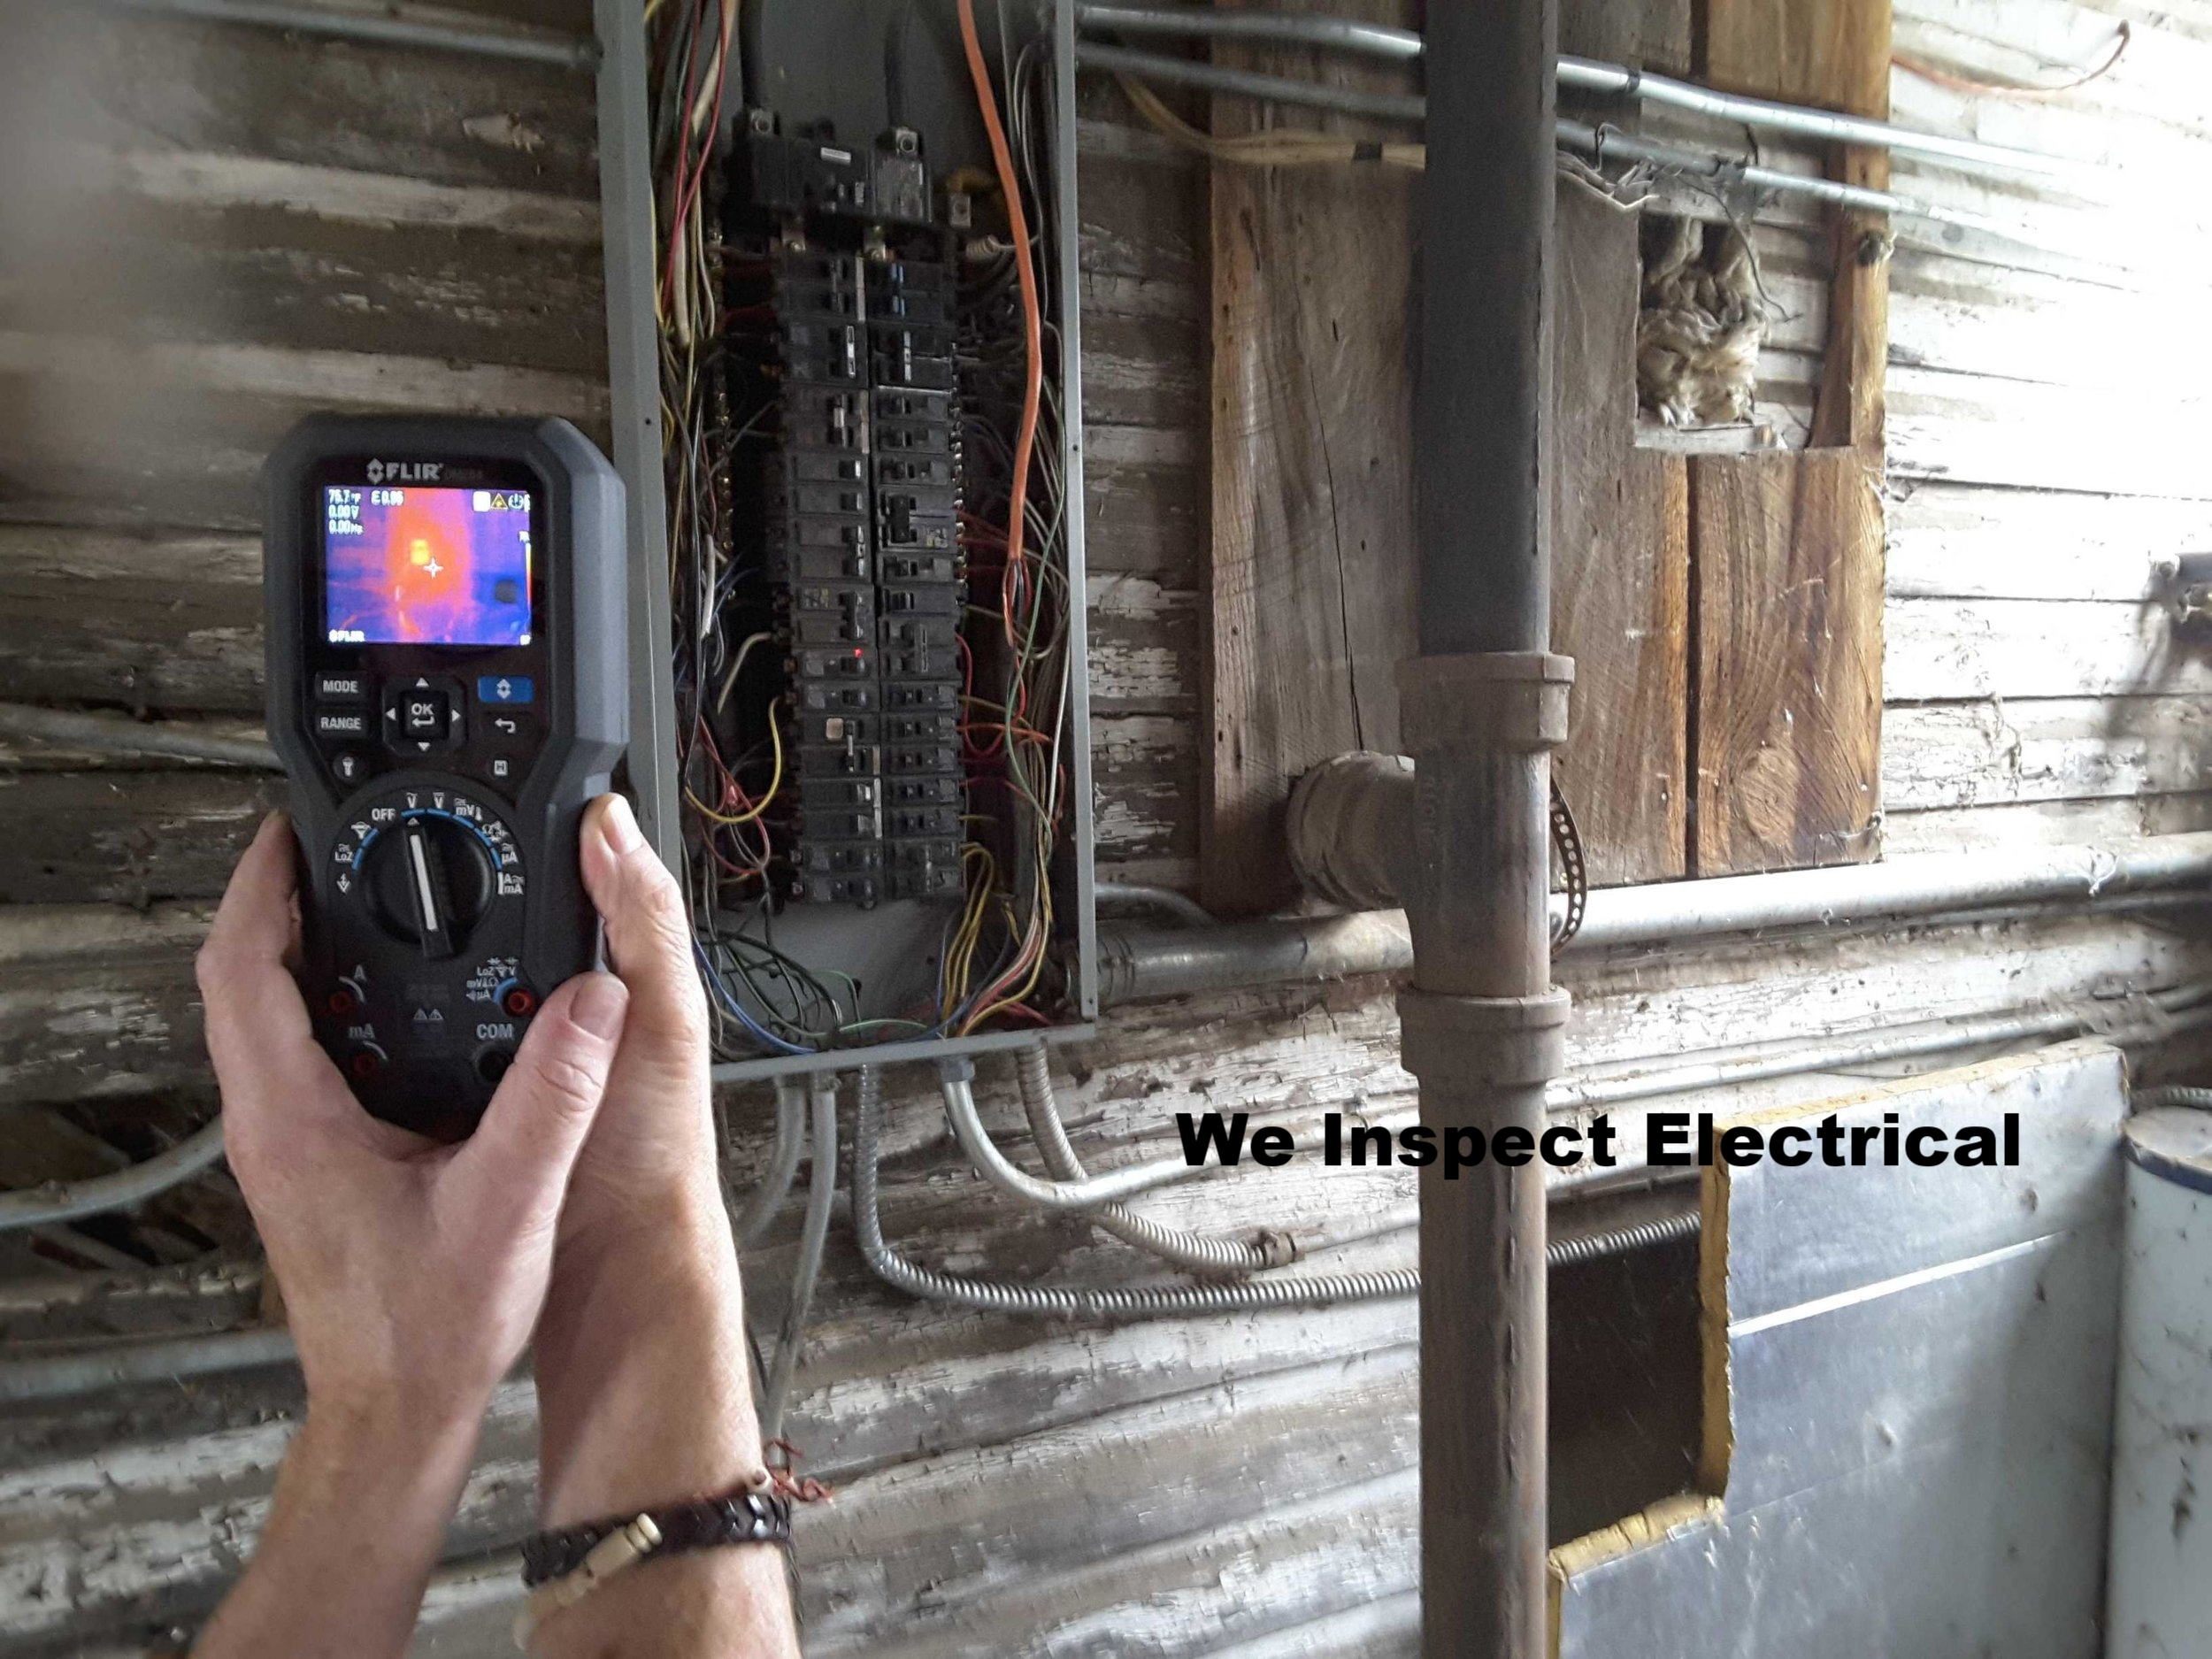 Thermal Imagery of electrical